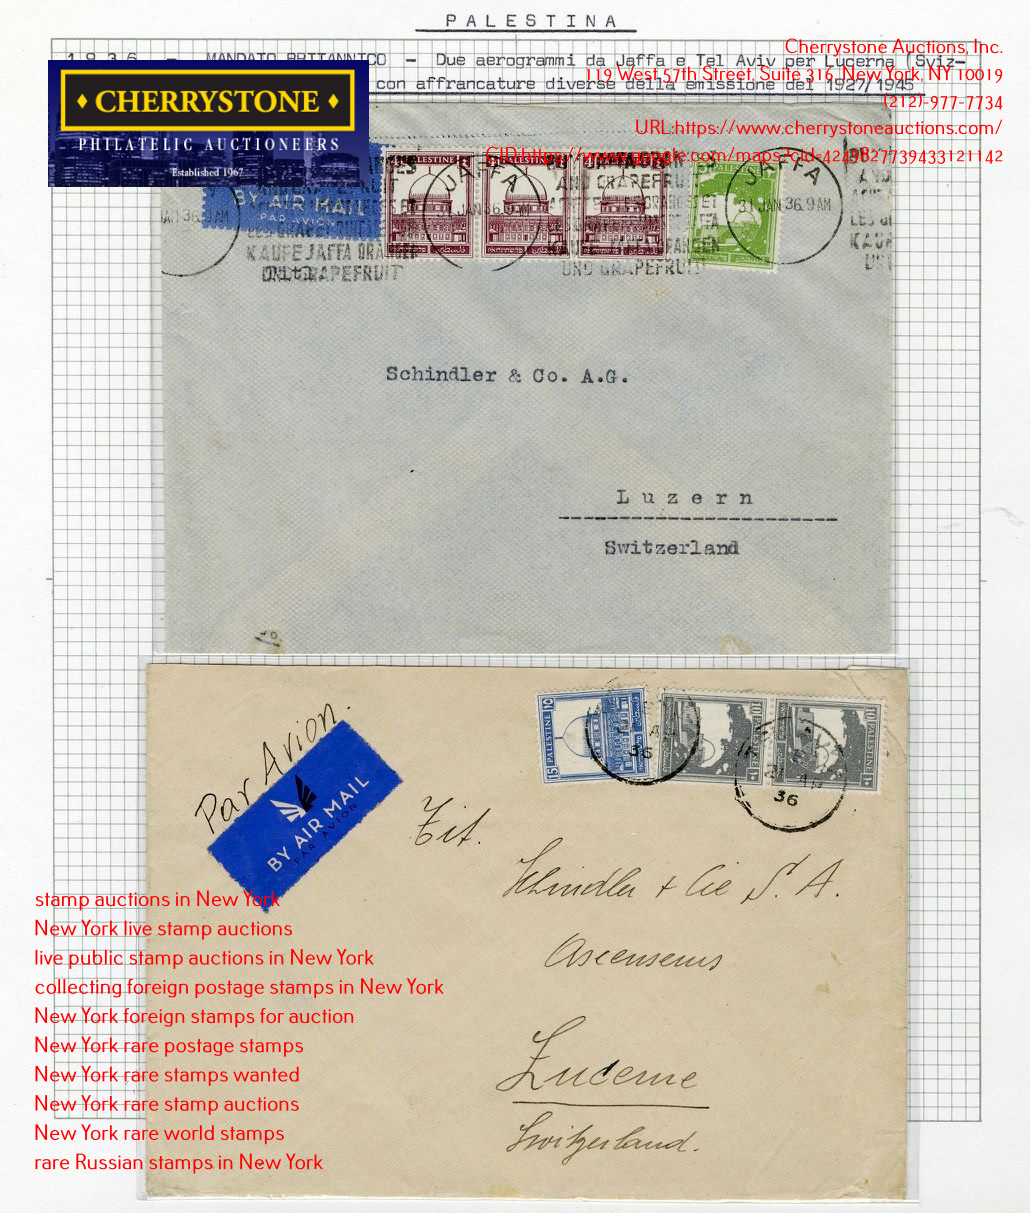 Cherrystone Auctions, Inc. Holds Live Public Philatelic Auction In New York, NY